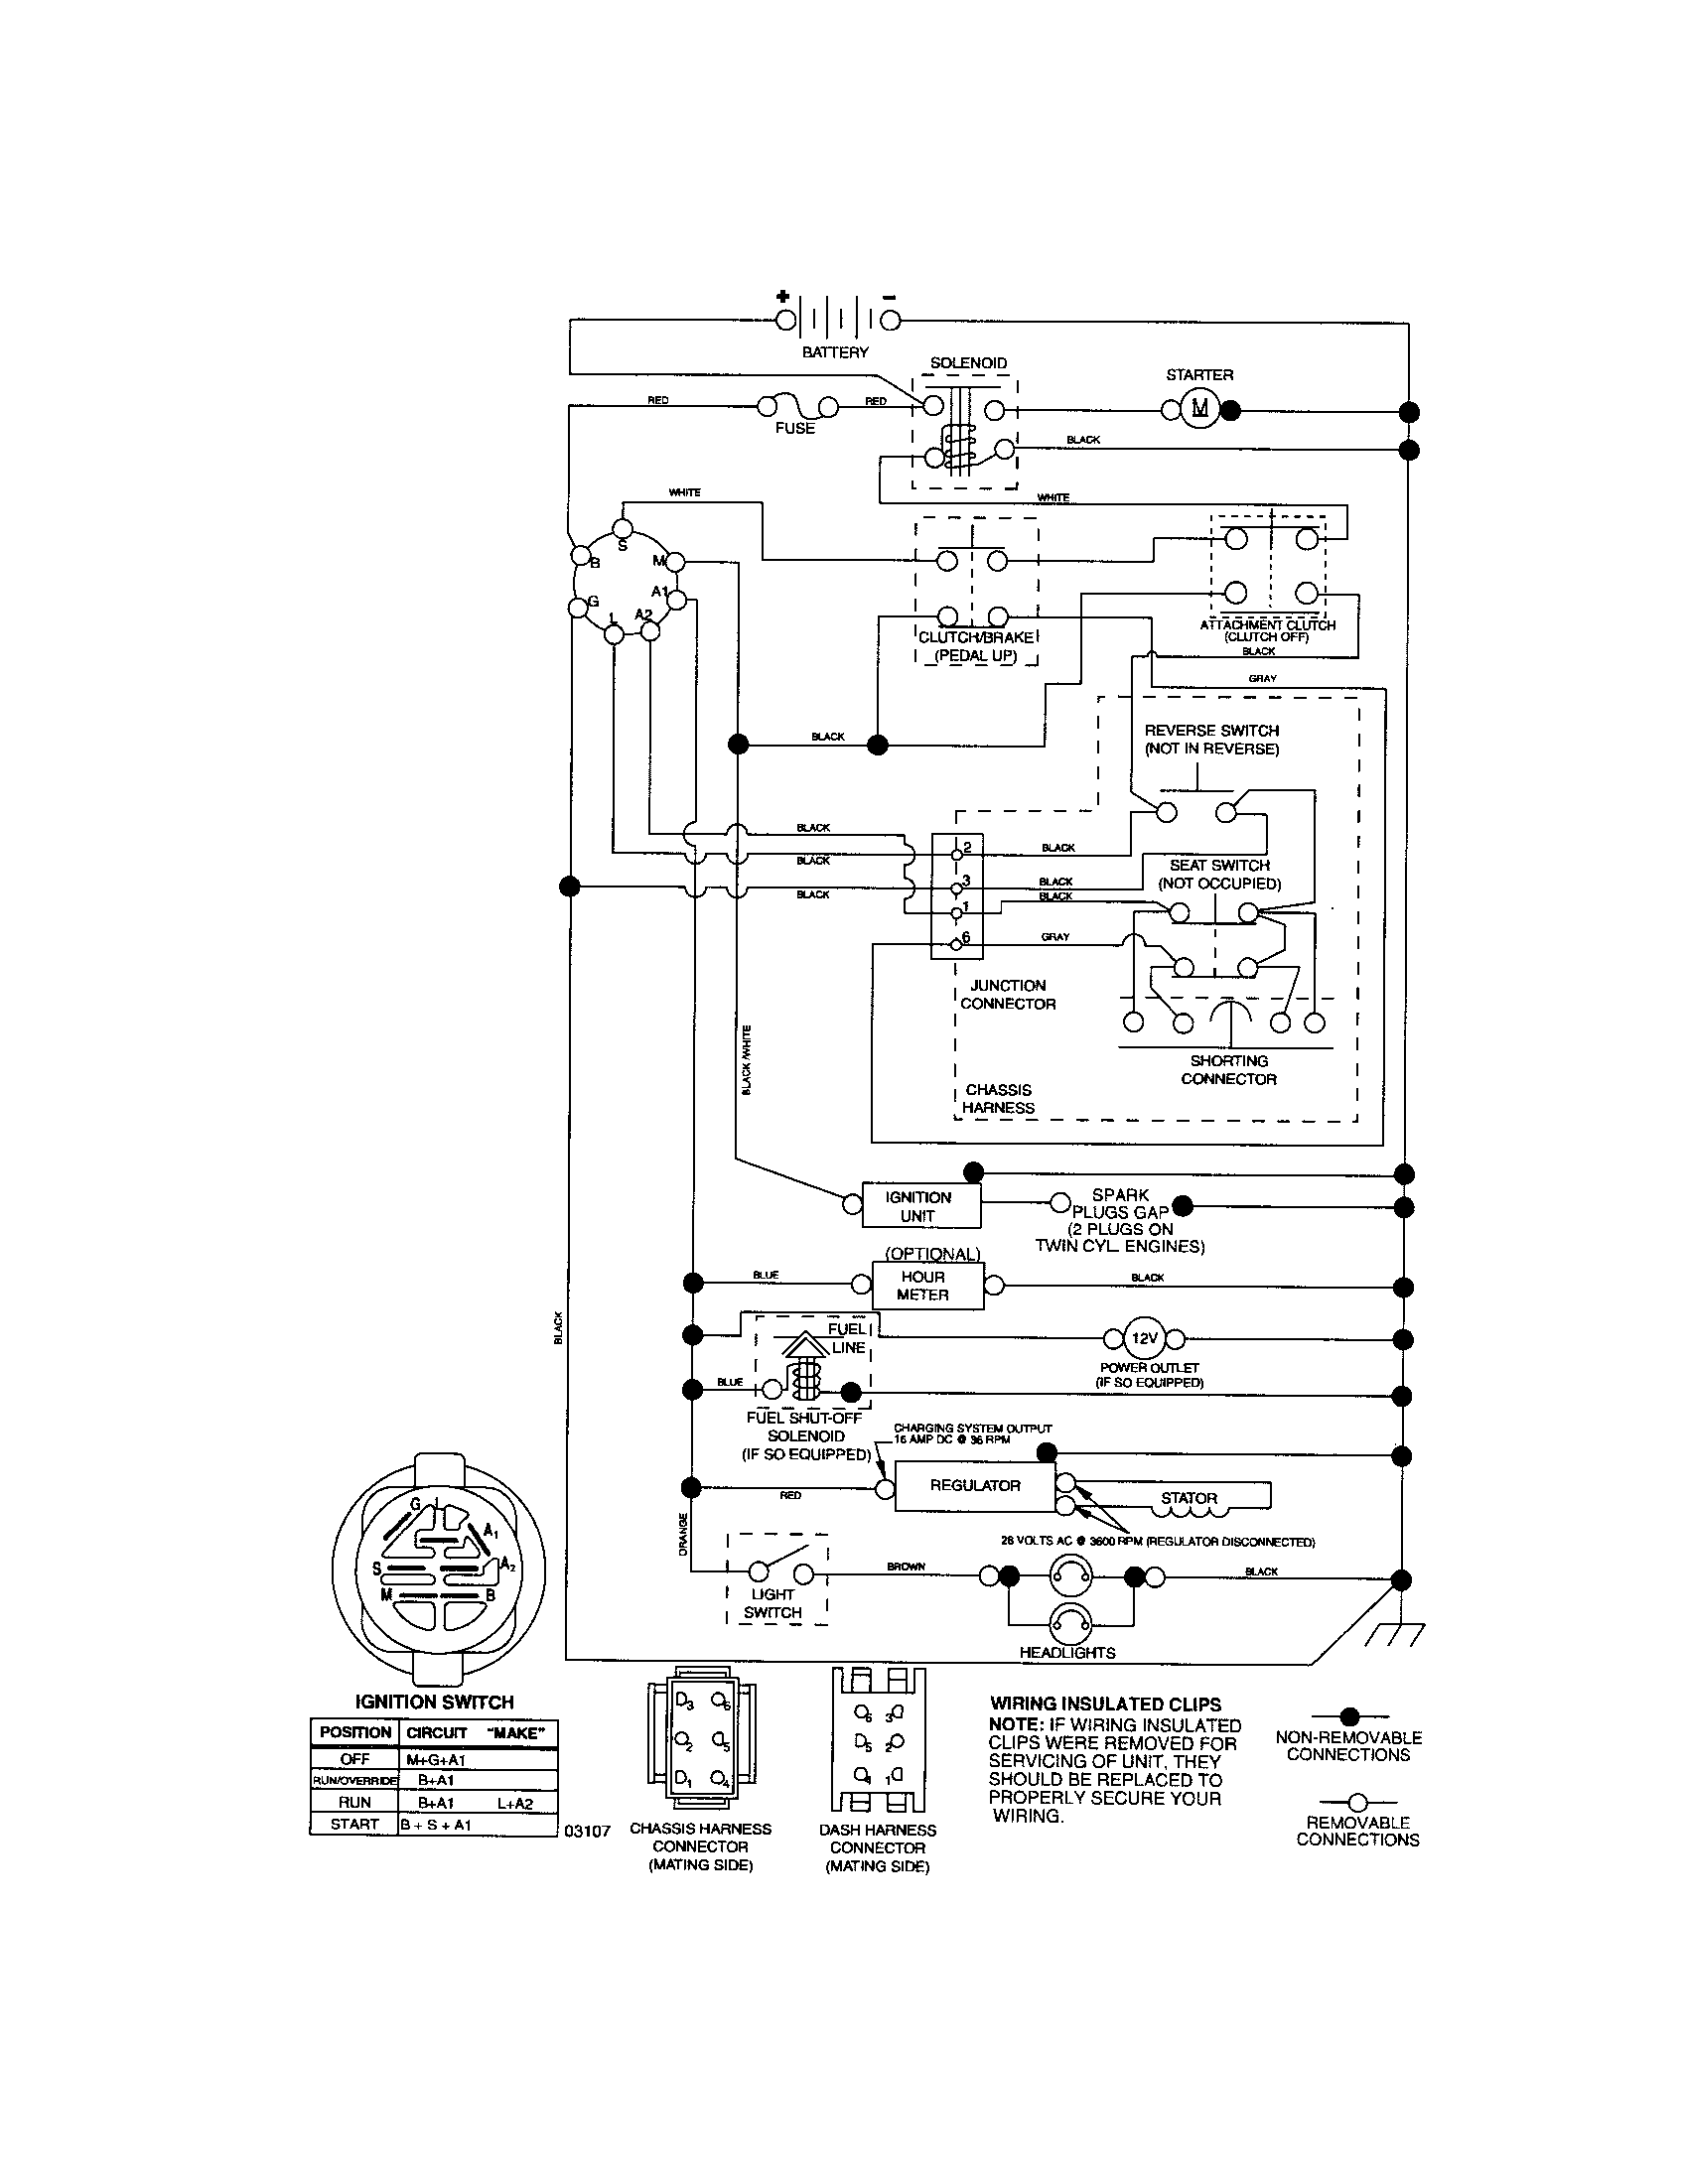 WRG-0704] Shop Wiring Diagrams on